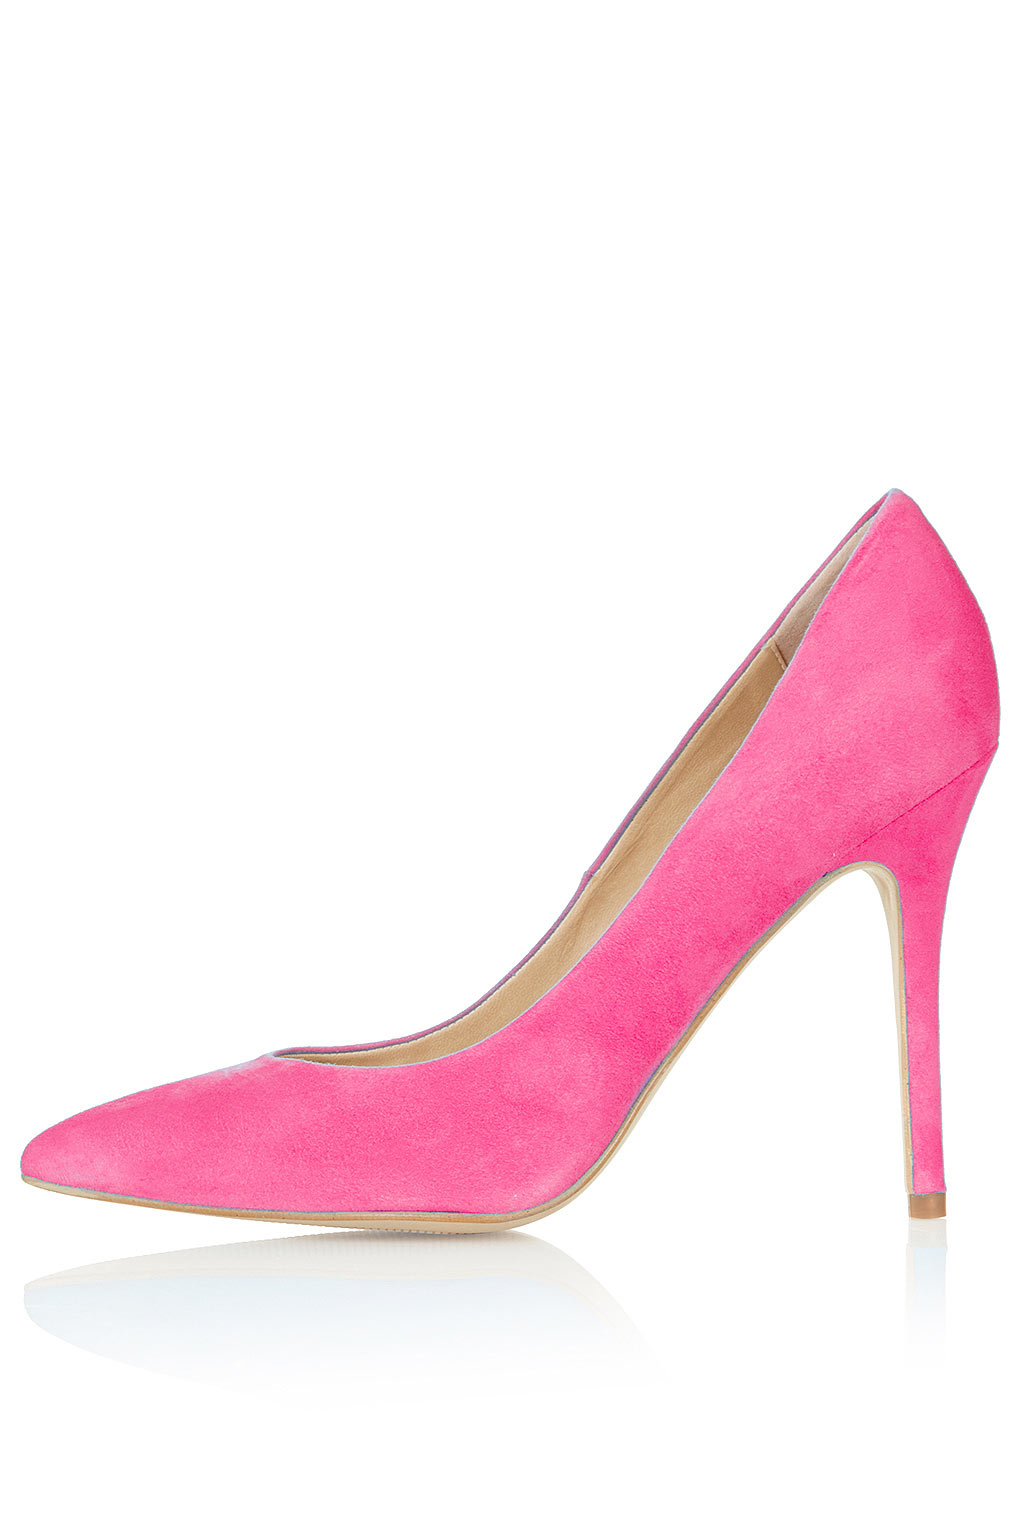 Topshop Gwenda Pointed Courts in Pink | Lyst